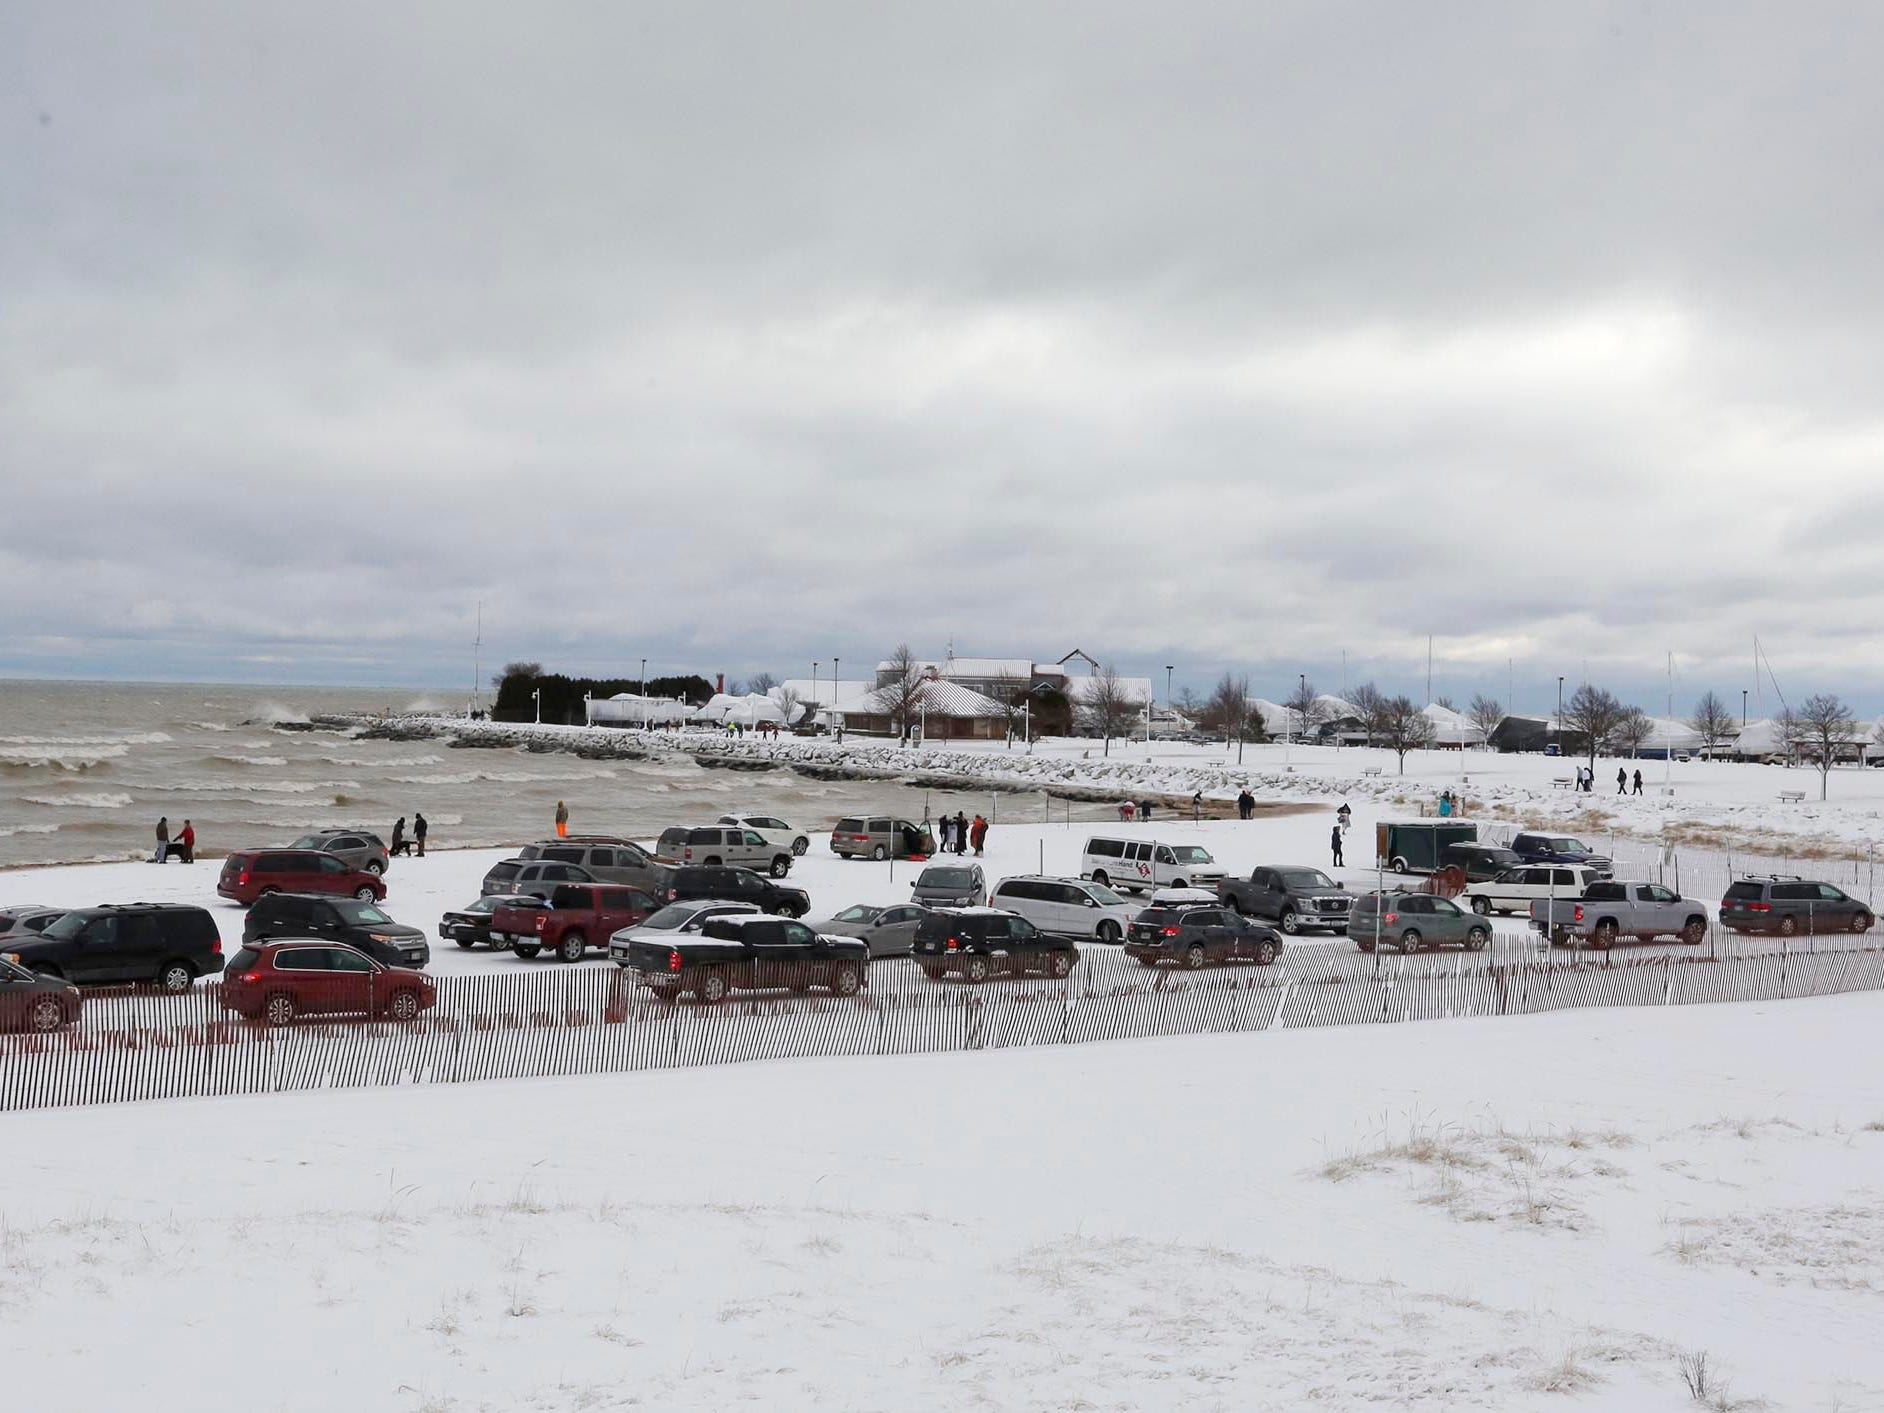 Vehicles line up to leave Deland Park beach following the Polar Bear Plunge, Tuesday, January 1, 2019, at Deland Park in Sheboygan, Wis.